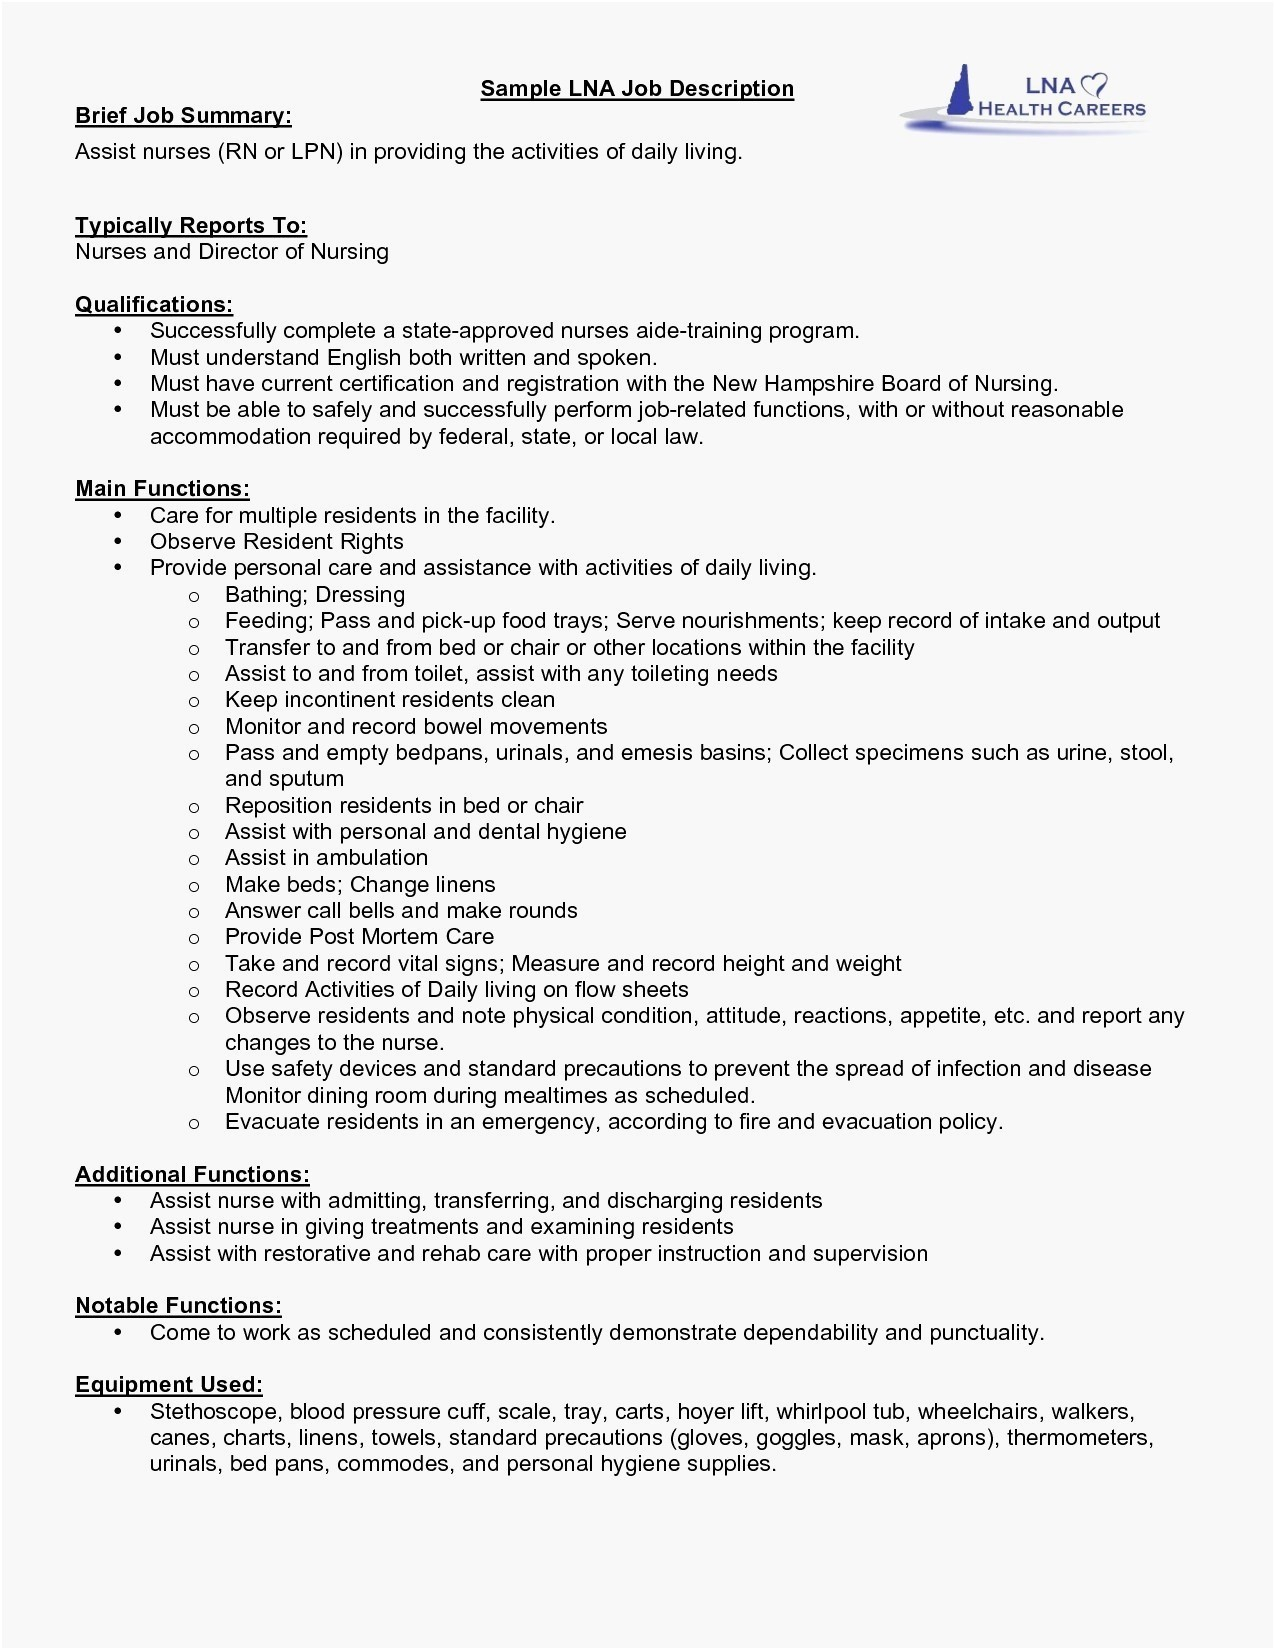 List Of Resume Skills - Job Skills List for Resume Inspirational Awesome Resume Portfolio